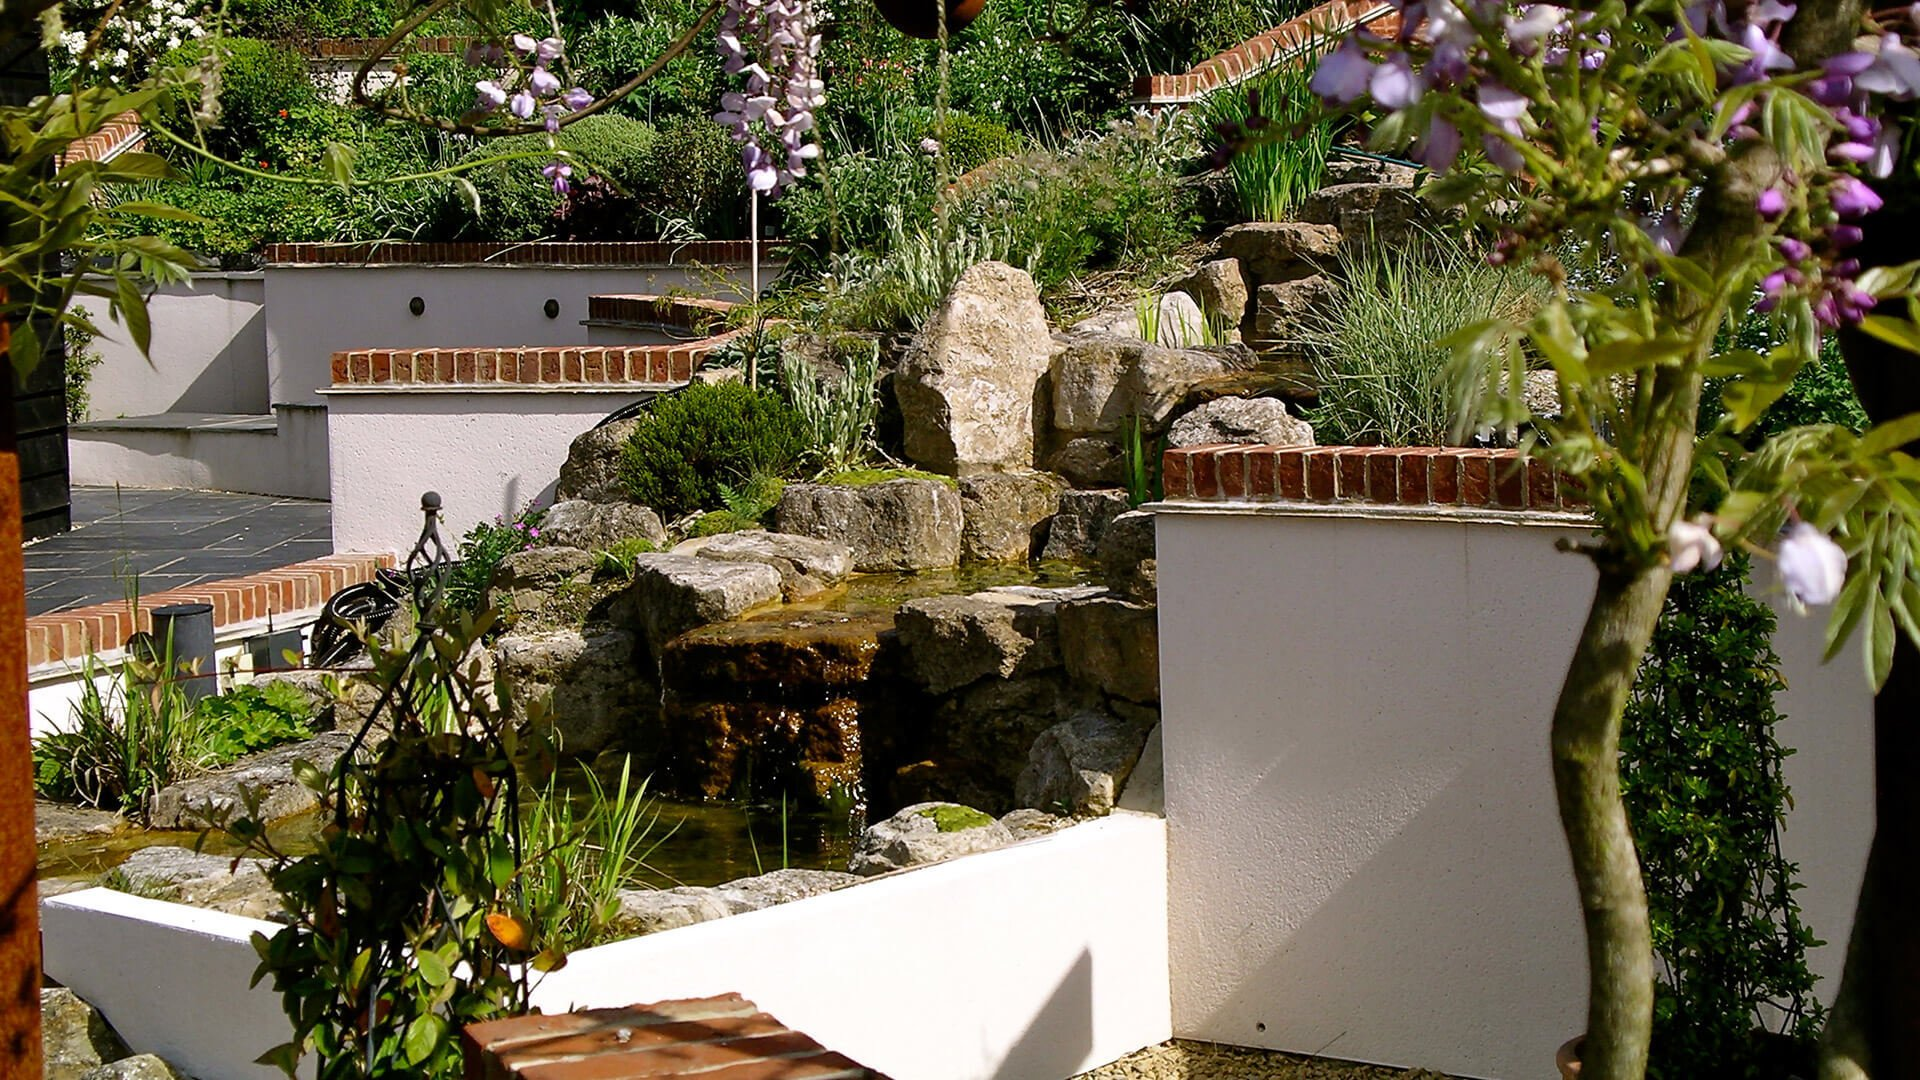 Garden Design & Landscape Services in South East England | Eden ...